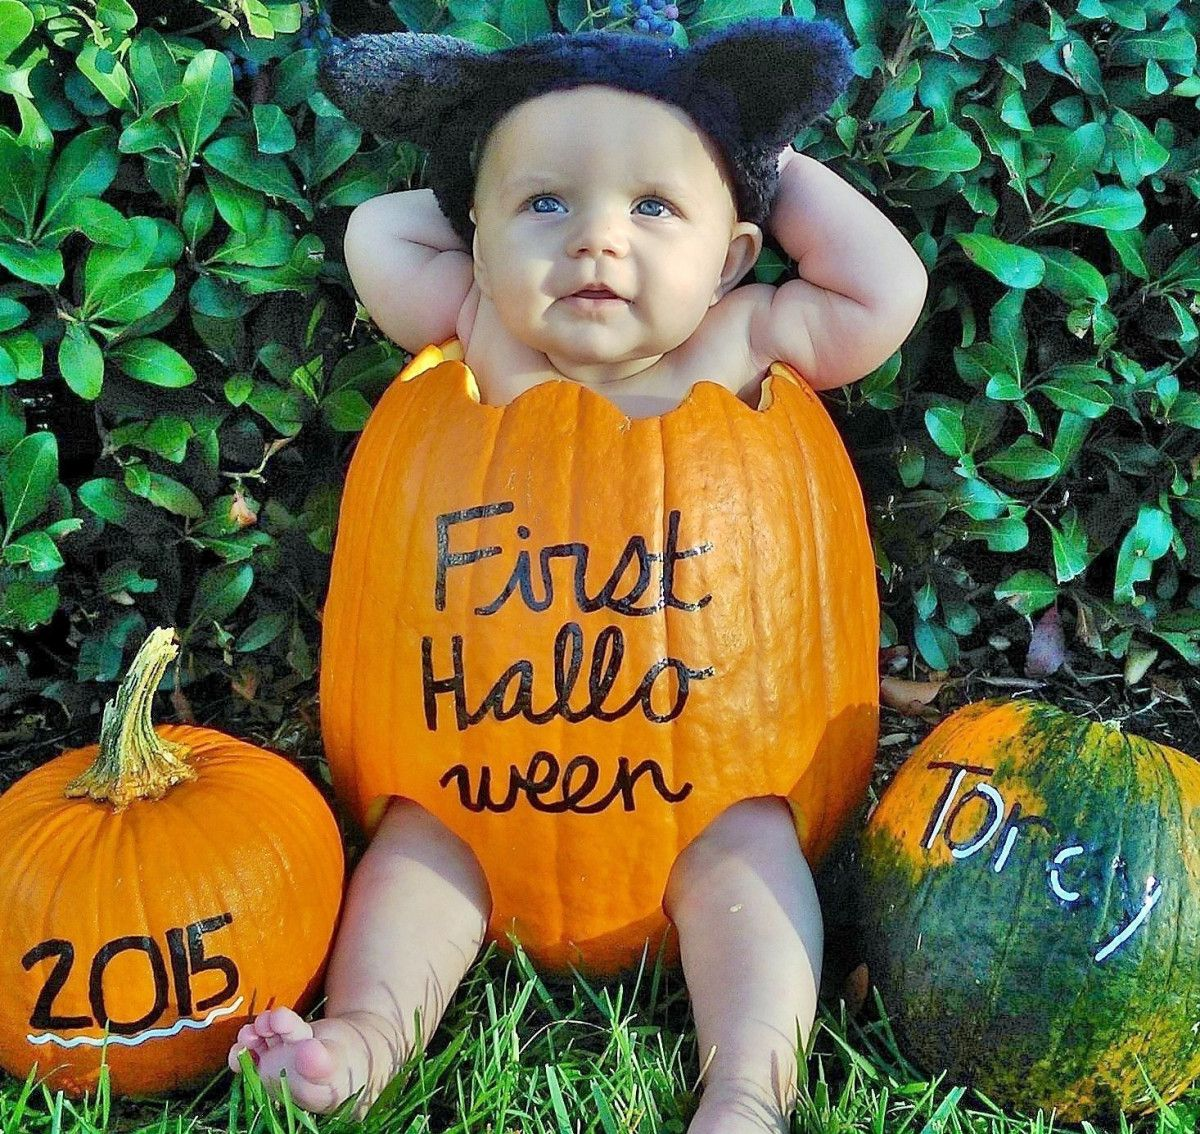 Cute DIY baby in a pumpkin for baby's first Halloween!